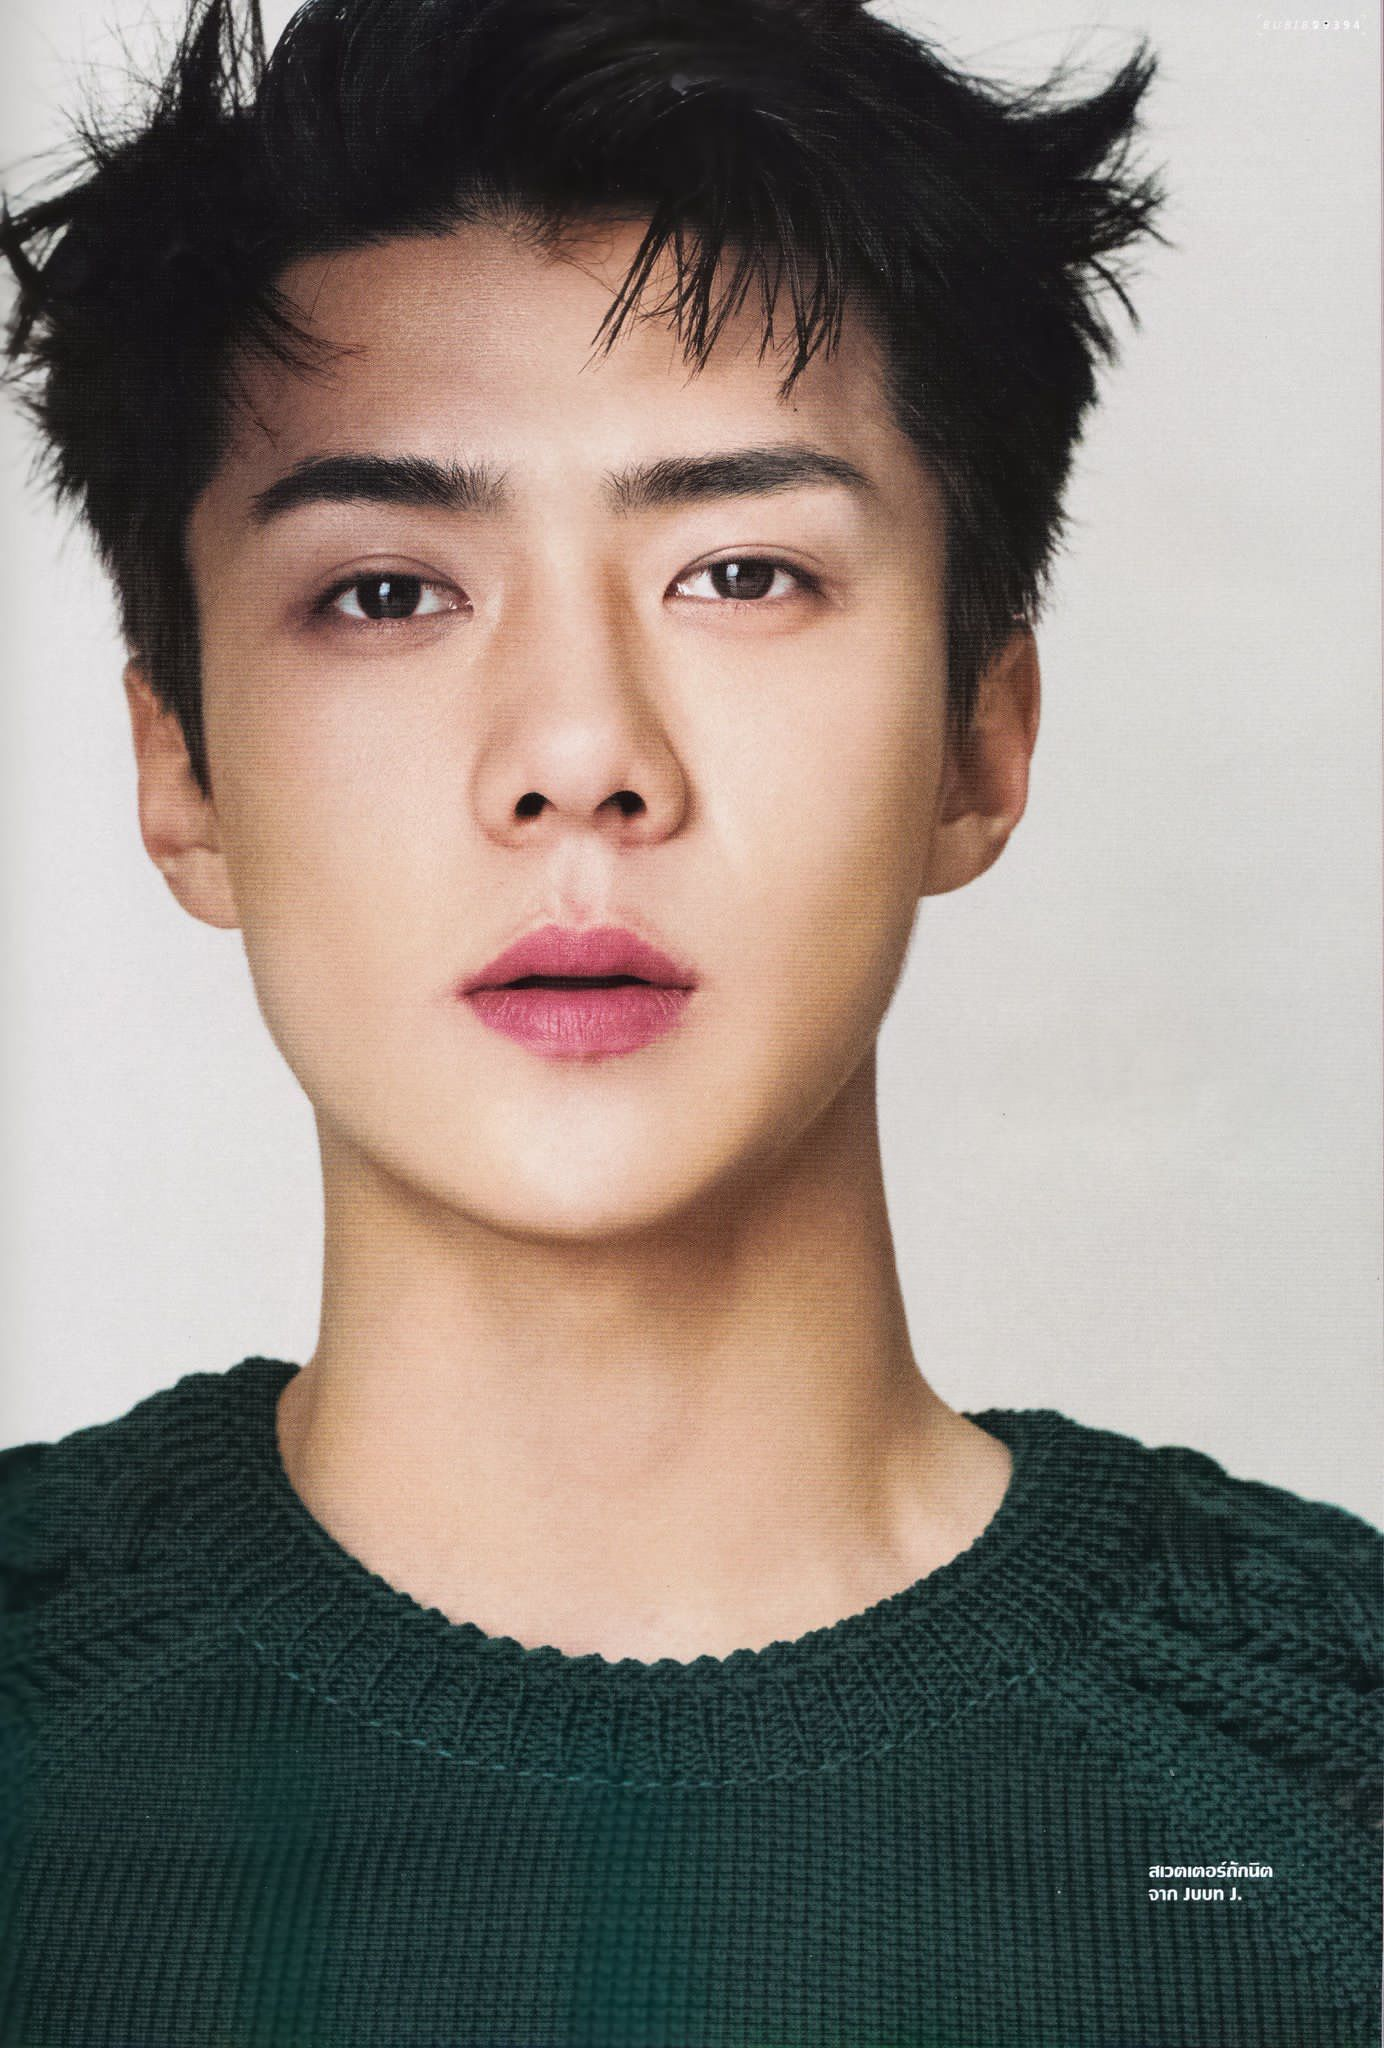 Oh sehun or god, as you want